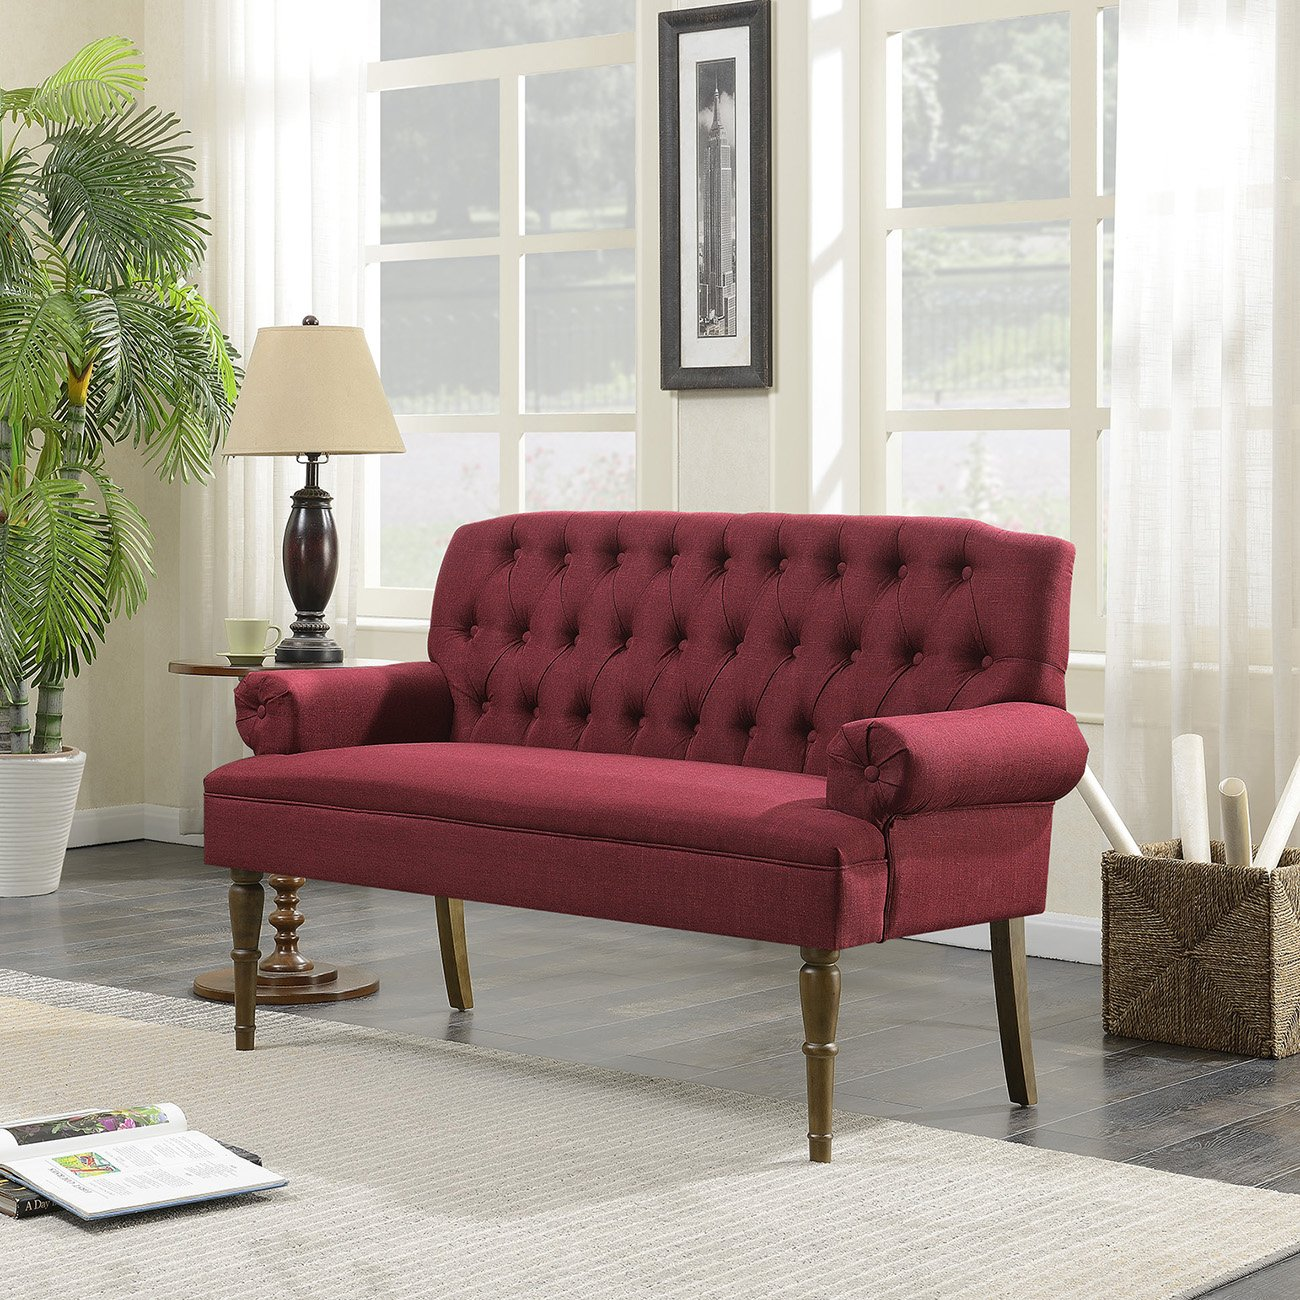 Belleze Mid-Century Upholstered Wood Legs, Vintage Sofa Settee Bench with Linen Fabric Button Tufted, Burgundy by Belleze